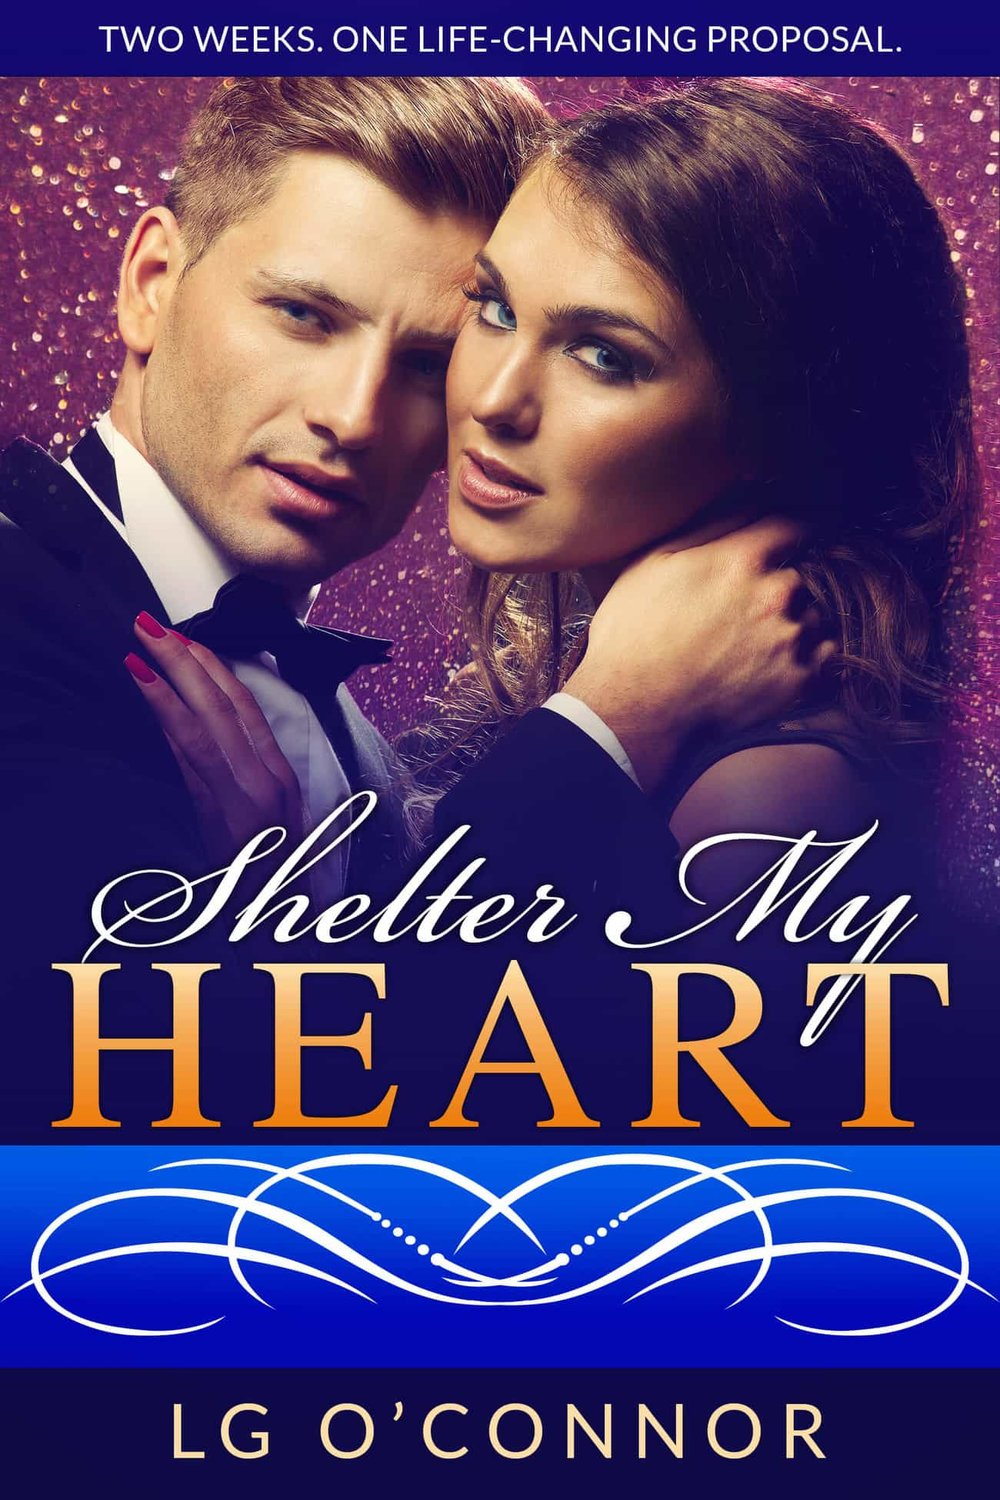 Shelter My Heart - Devon, an ailing, young CEO-in-training due to inherit his dead father's conglomerate saves the day for Jenny, an engaged young woman on her way home to see her family. To repay his kindness, she agrees to be his date for his family's annual society gala and convince the board that he's healthy and going to marry. Two weeks are all Devon needs, and two weeks are all Jenny can give—until the stakes rise, forcing Jenny to answer the question: How far is she willing to go to save Devon's life?